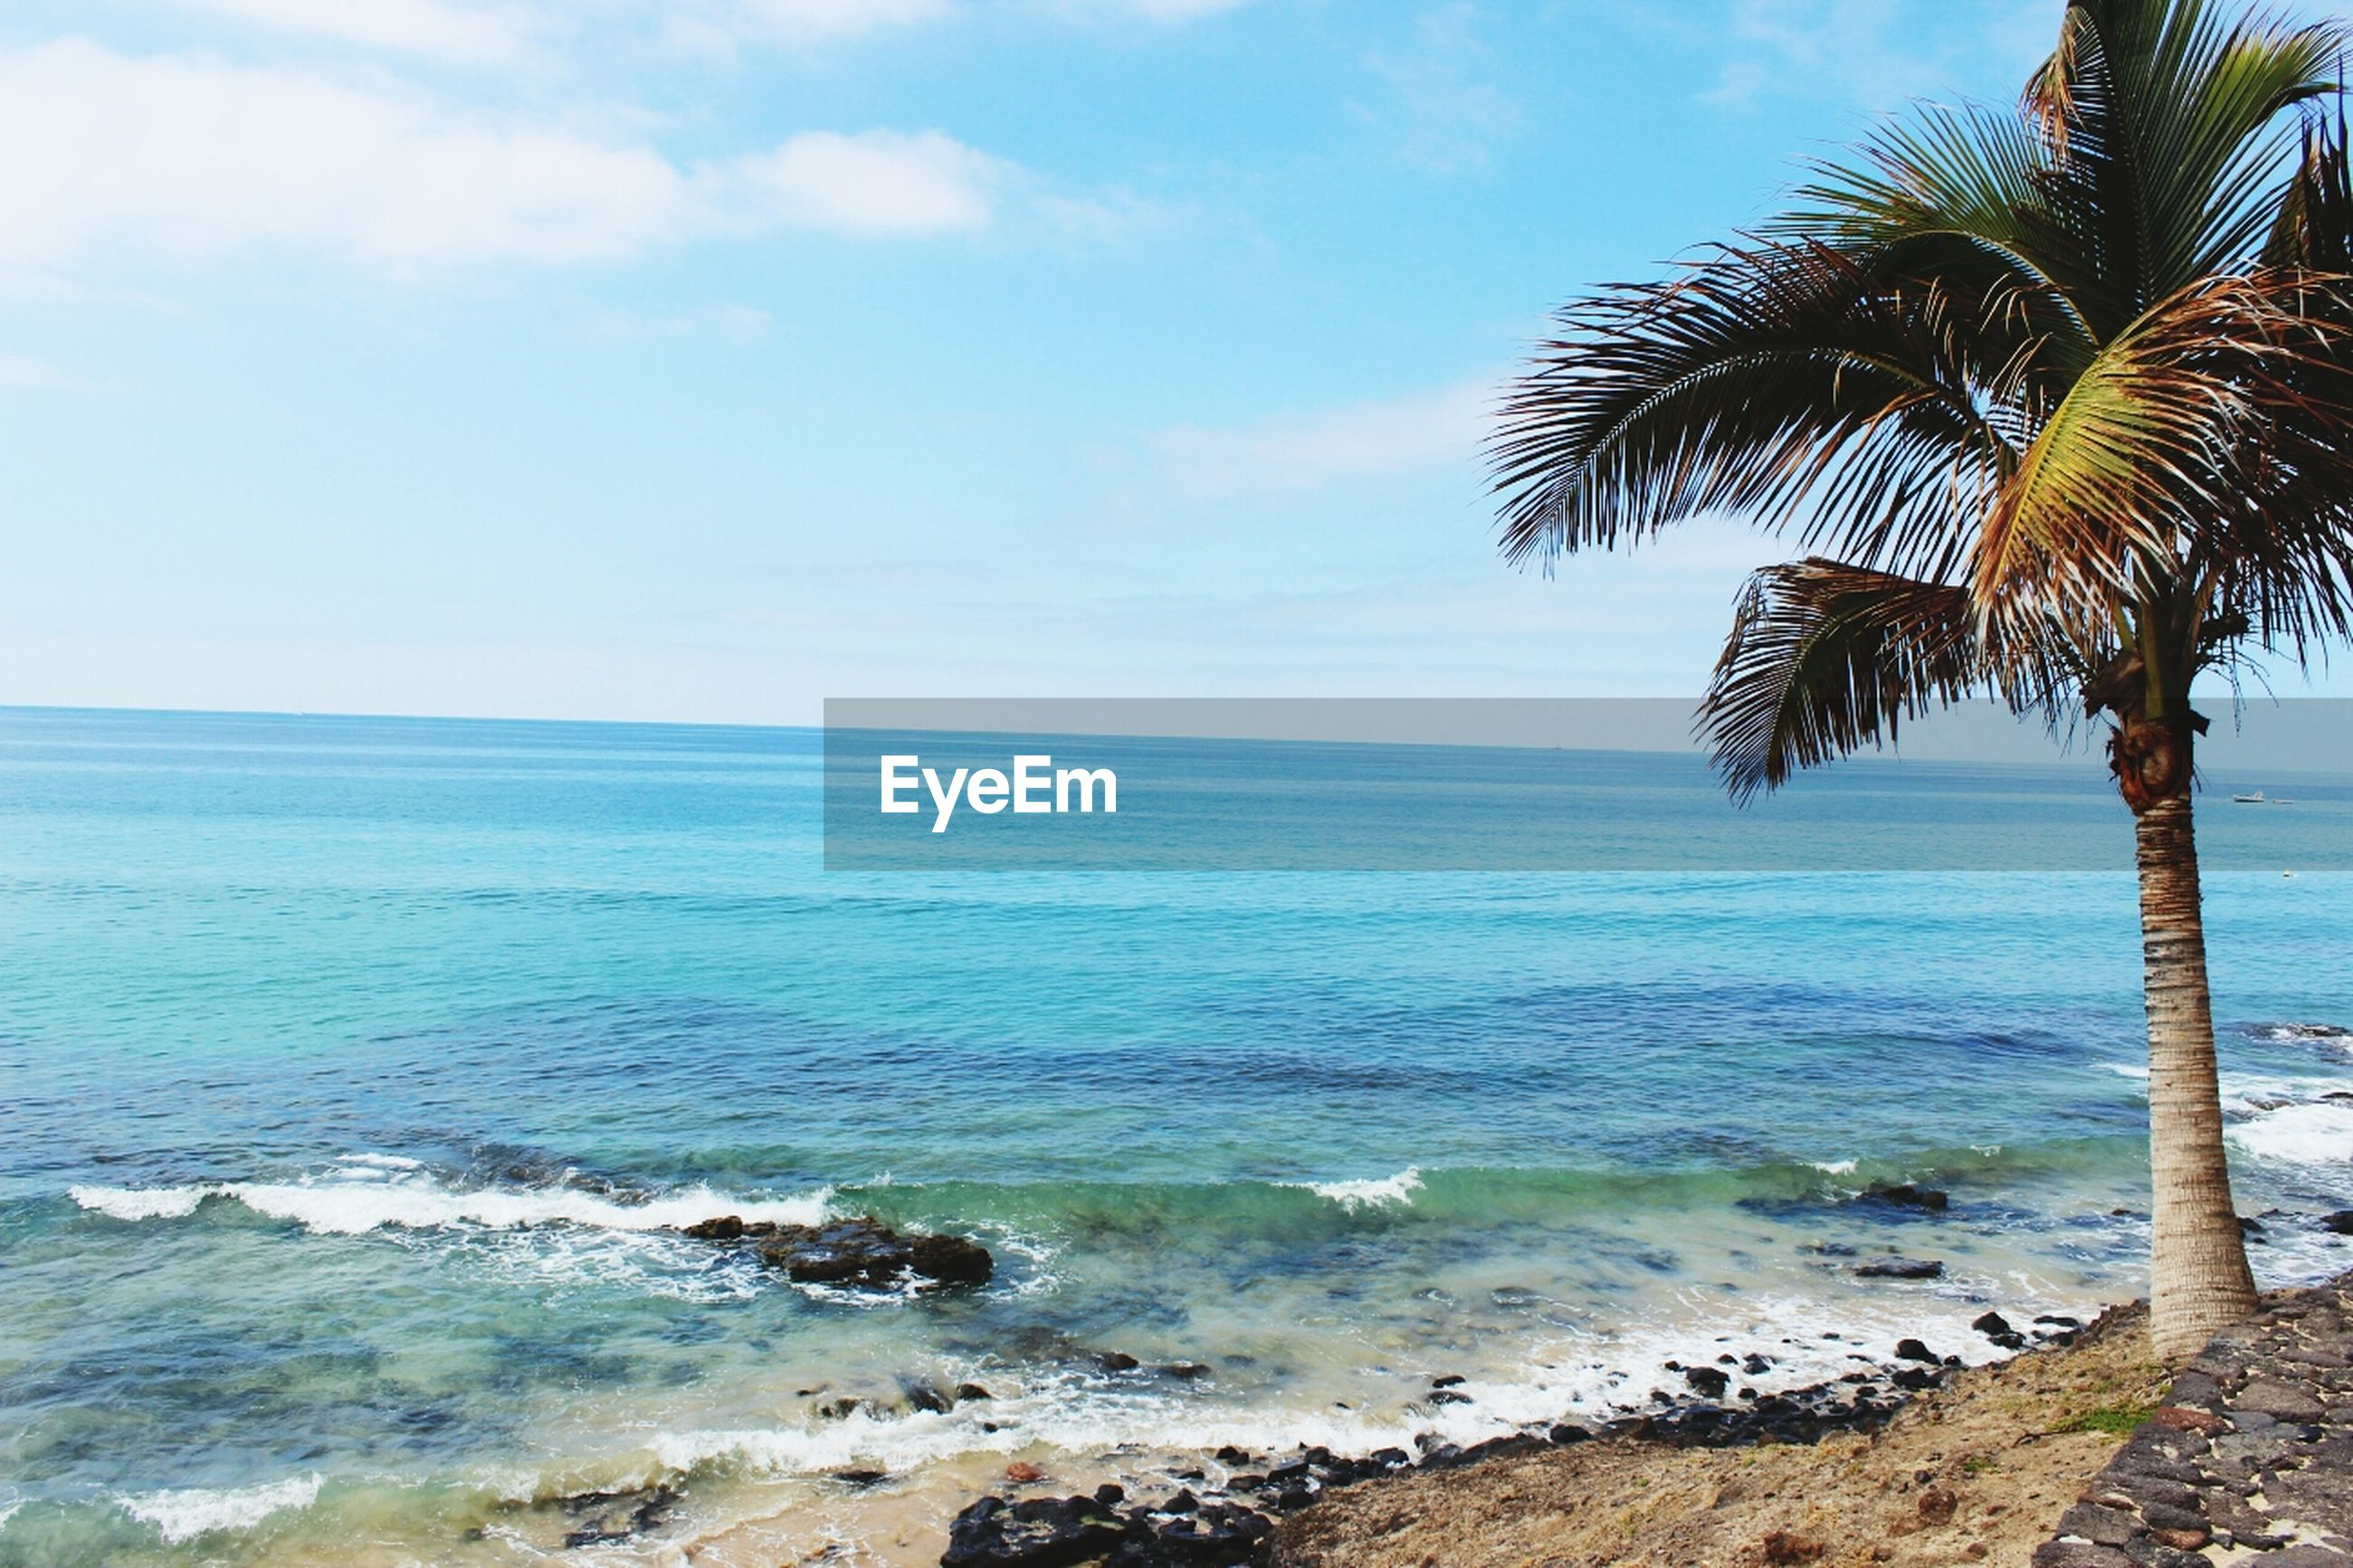 sea, beach, water, horizon over water, tranquility, tranquil scene, scenics, palm tree, sky, shore, beauty in nature, tree, nature, sand, idyllic, coastline, wave, day, outdoors, non-urban scene